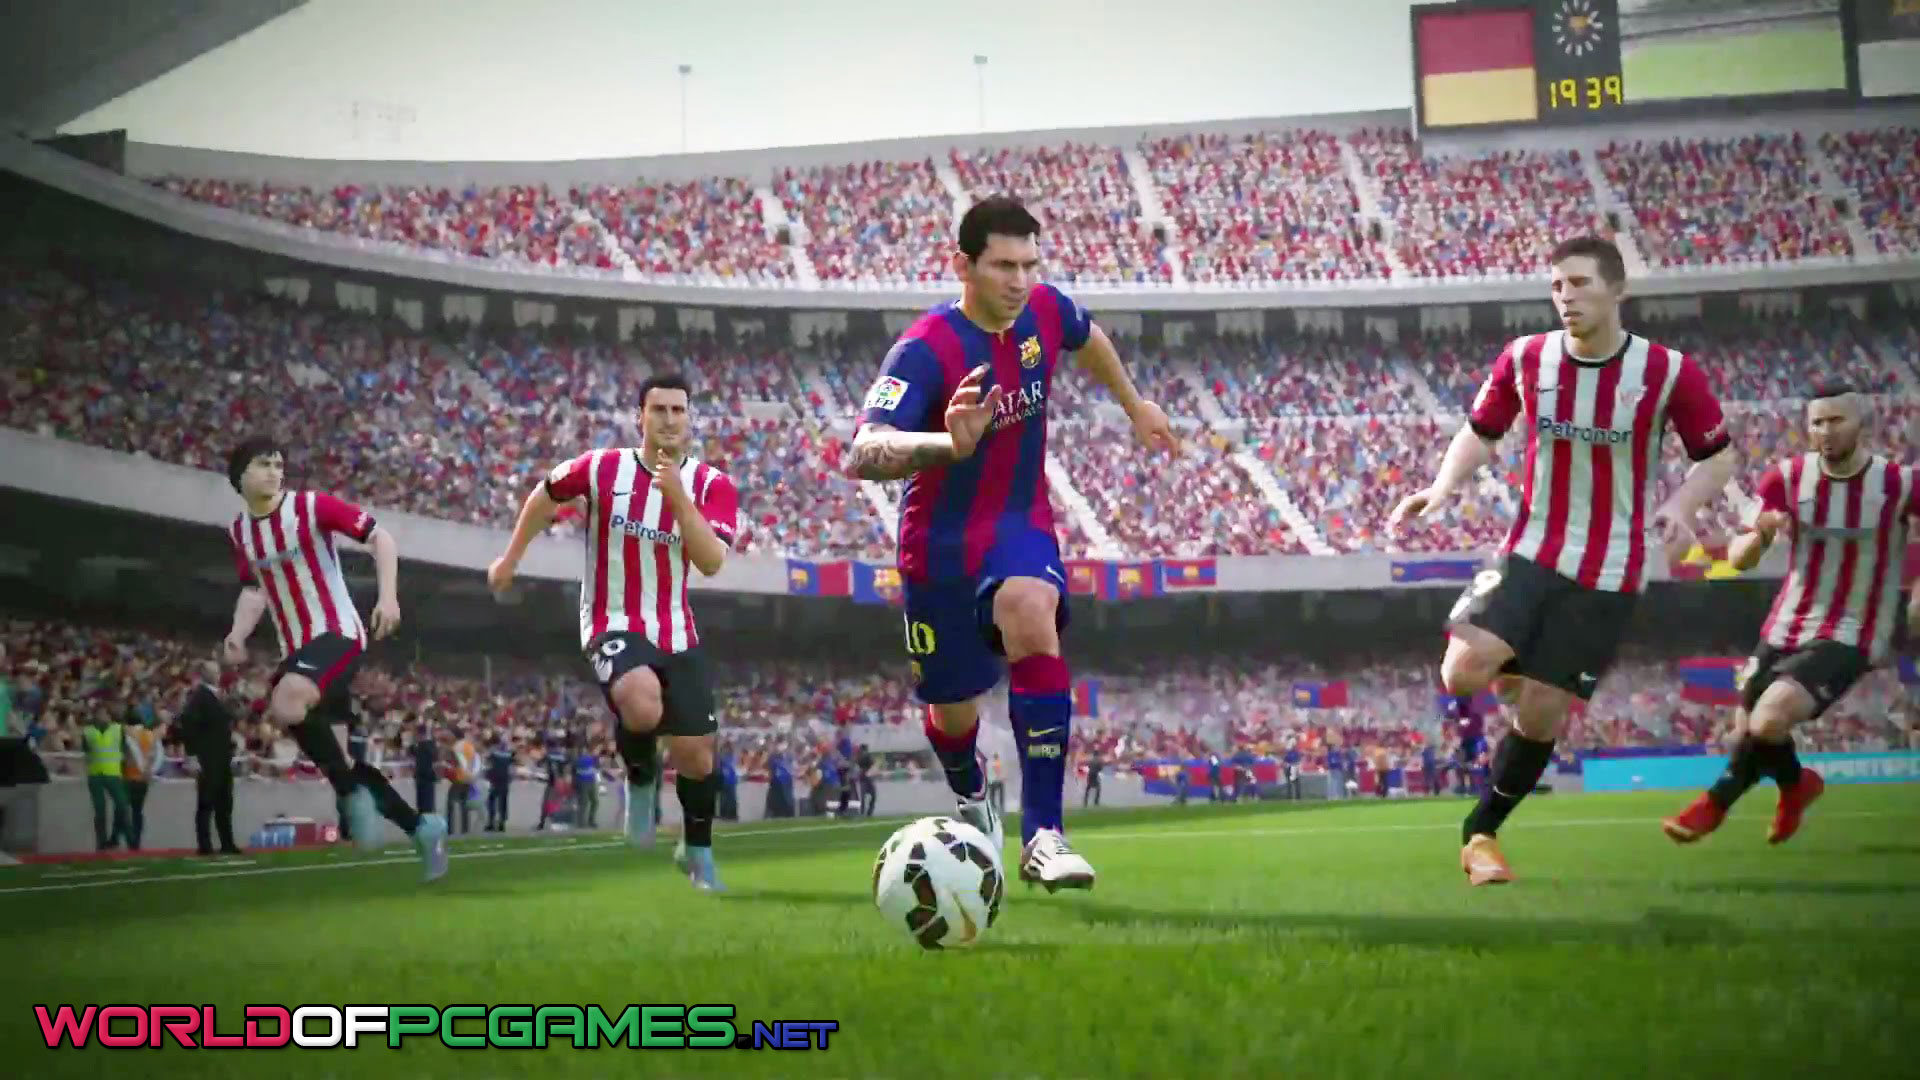 FIFA 16 Free Download PC Game By Worldofpcgames.com